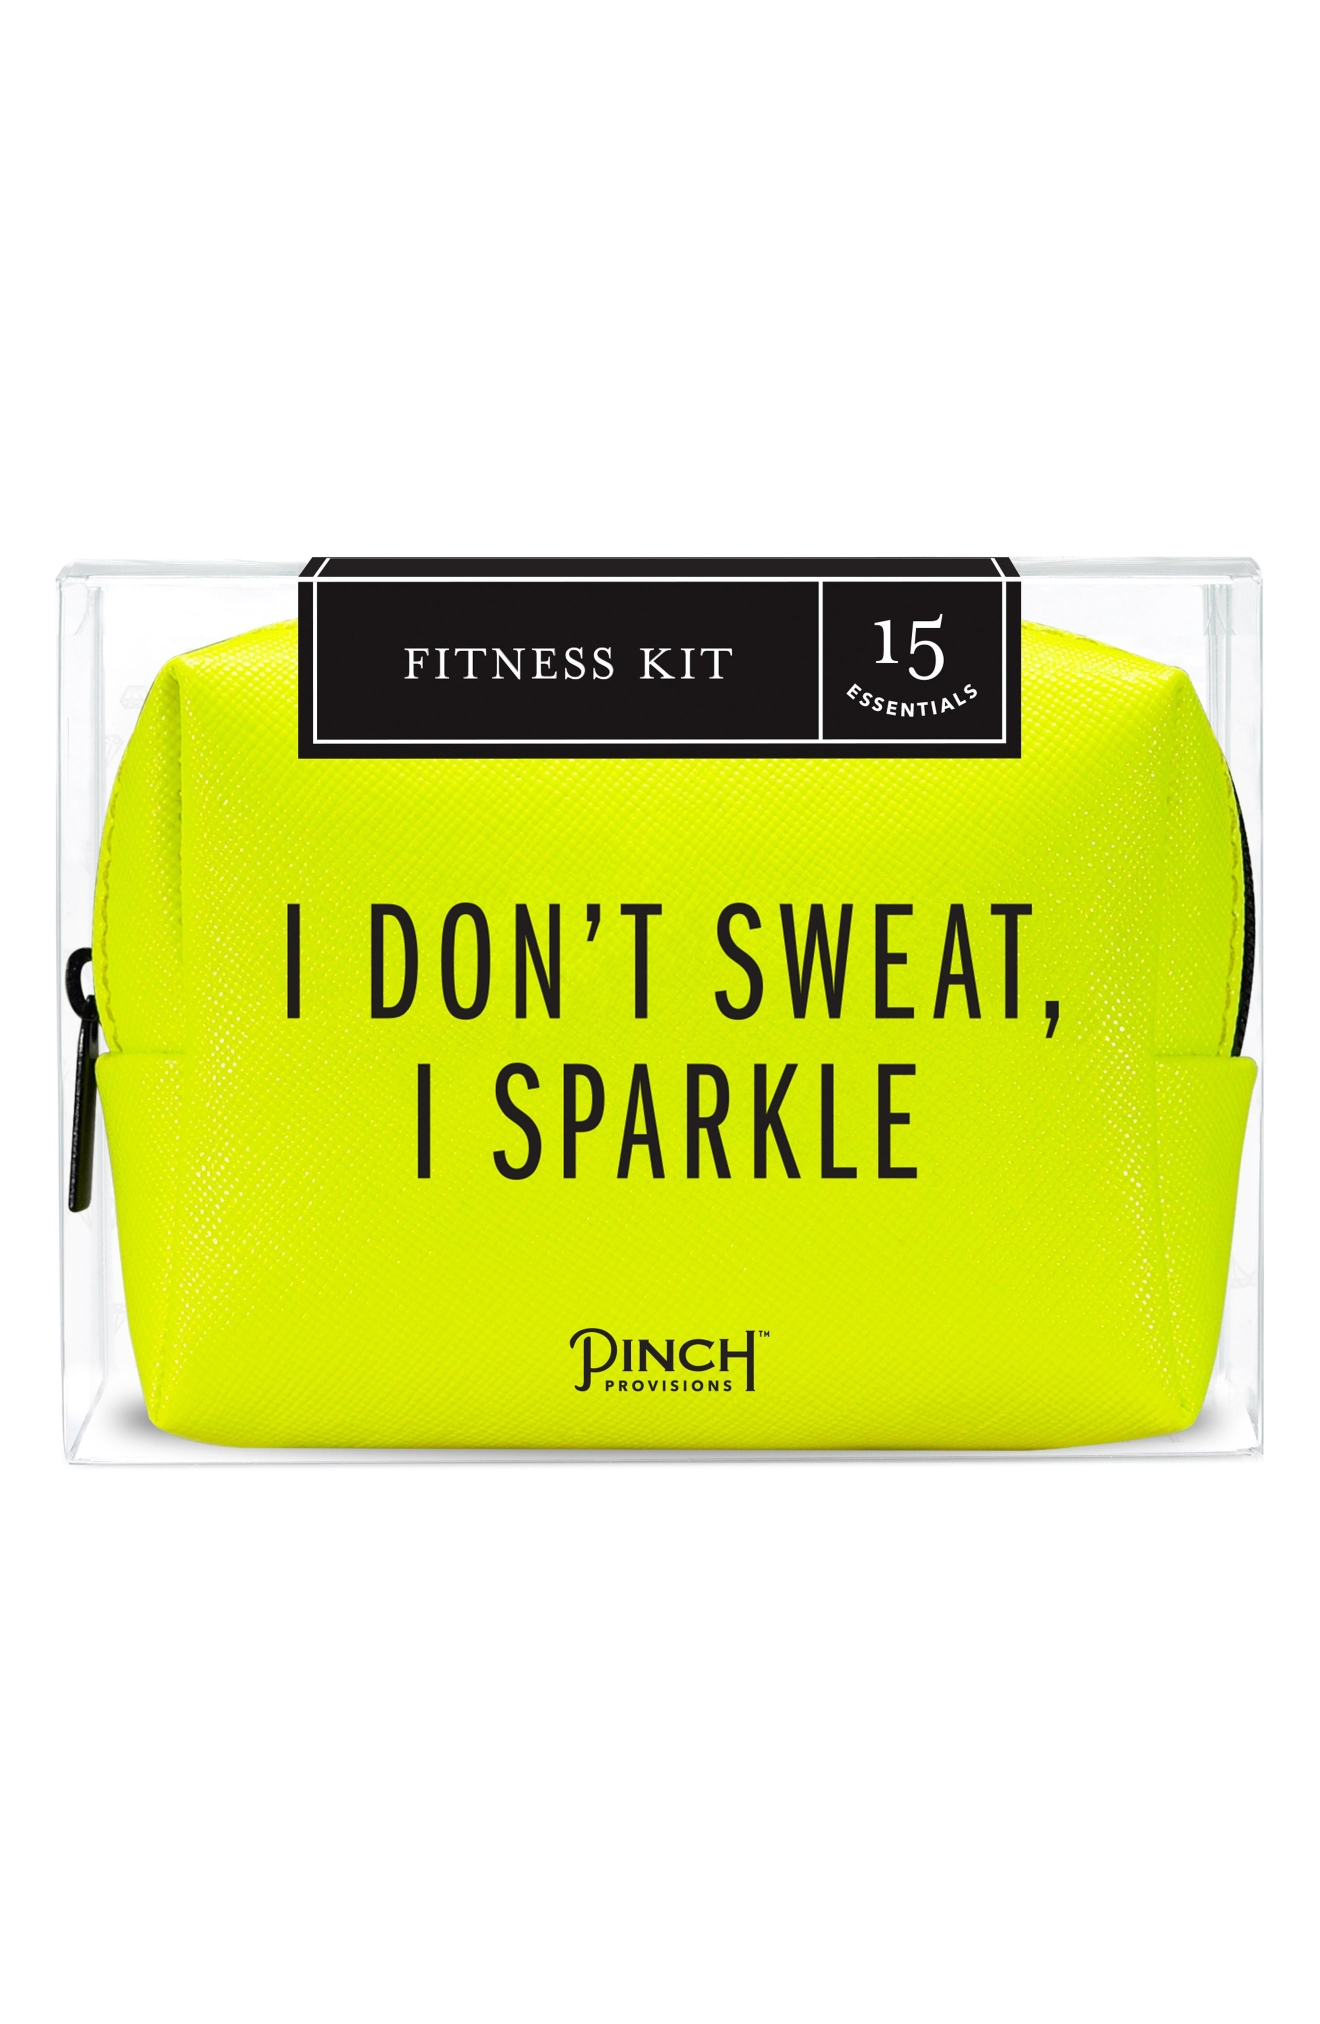 Pinch Provisions 'Fitness' Kit $22 (Nordstrom)